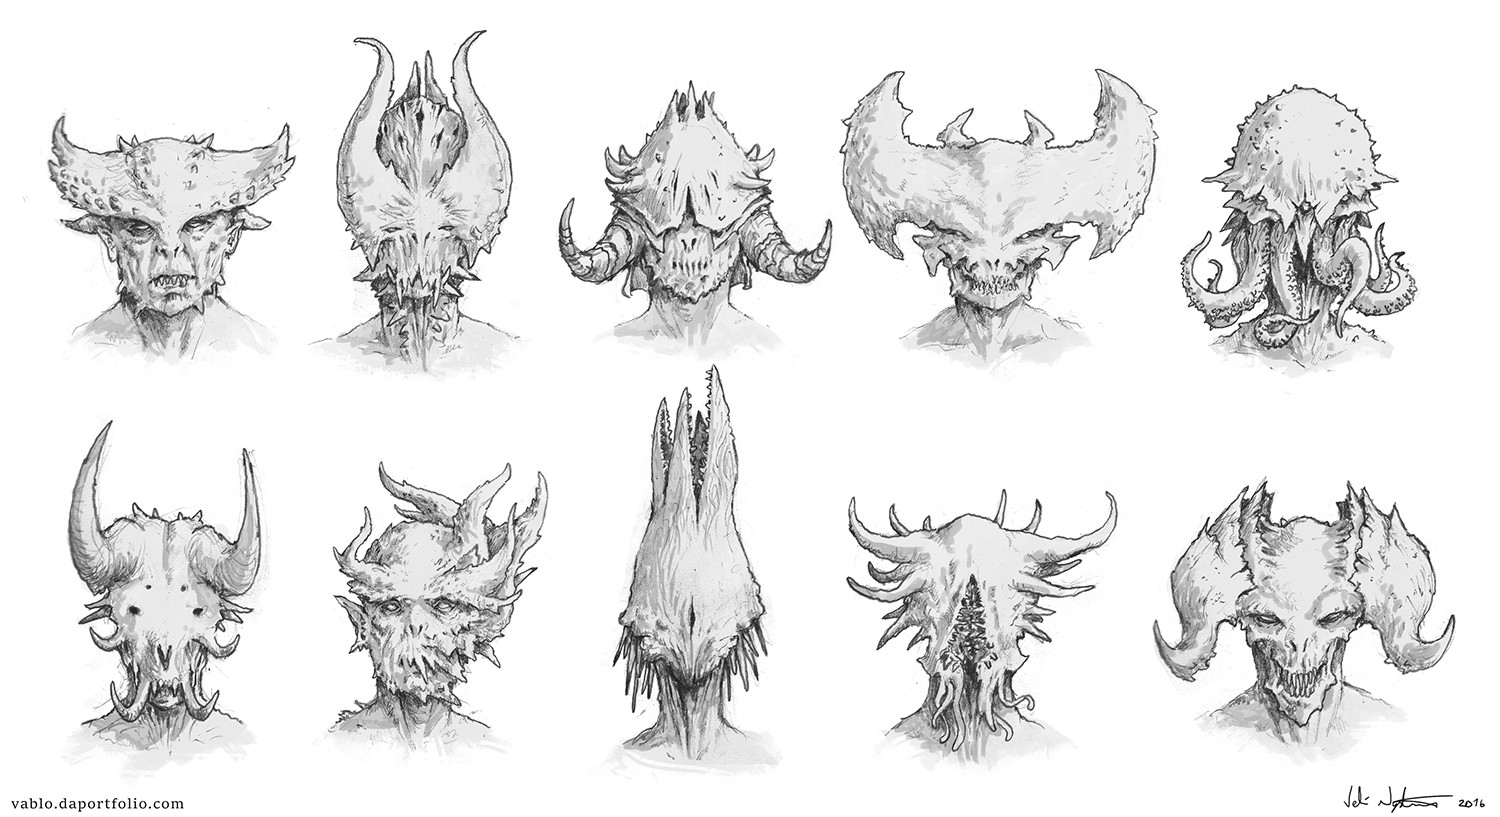 Demon head concepts